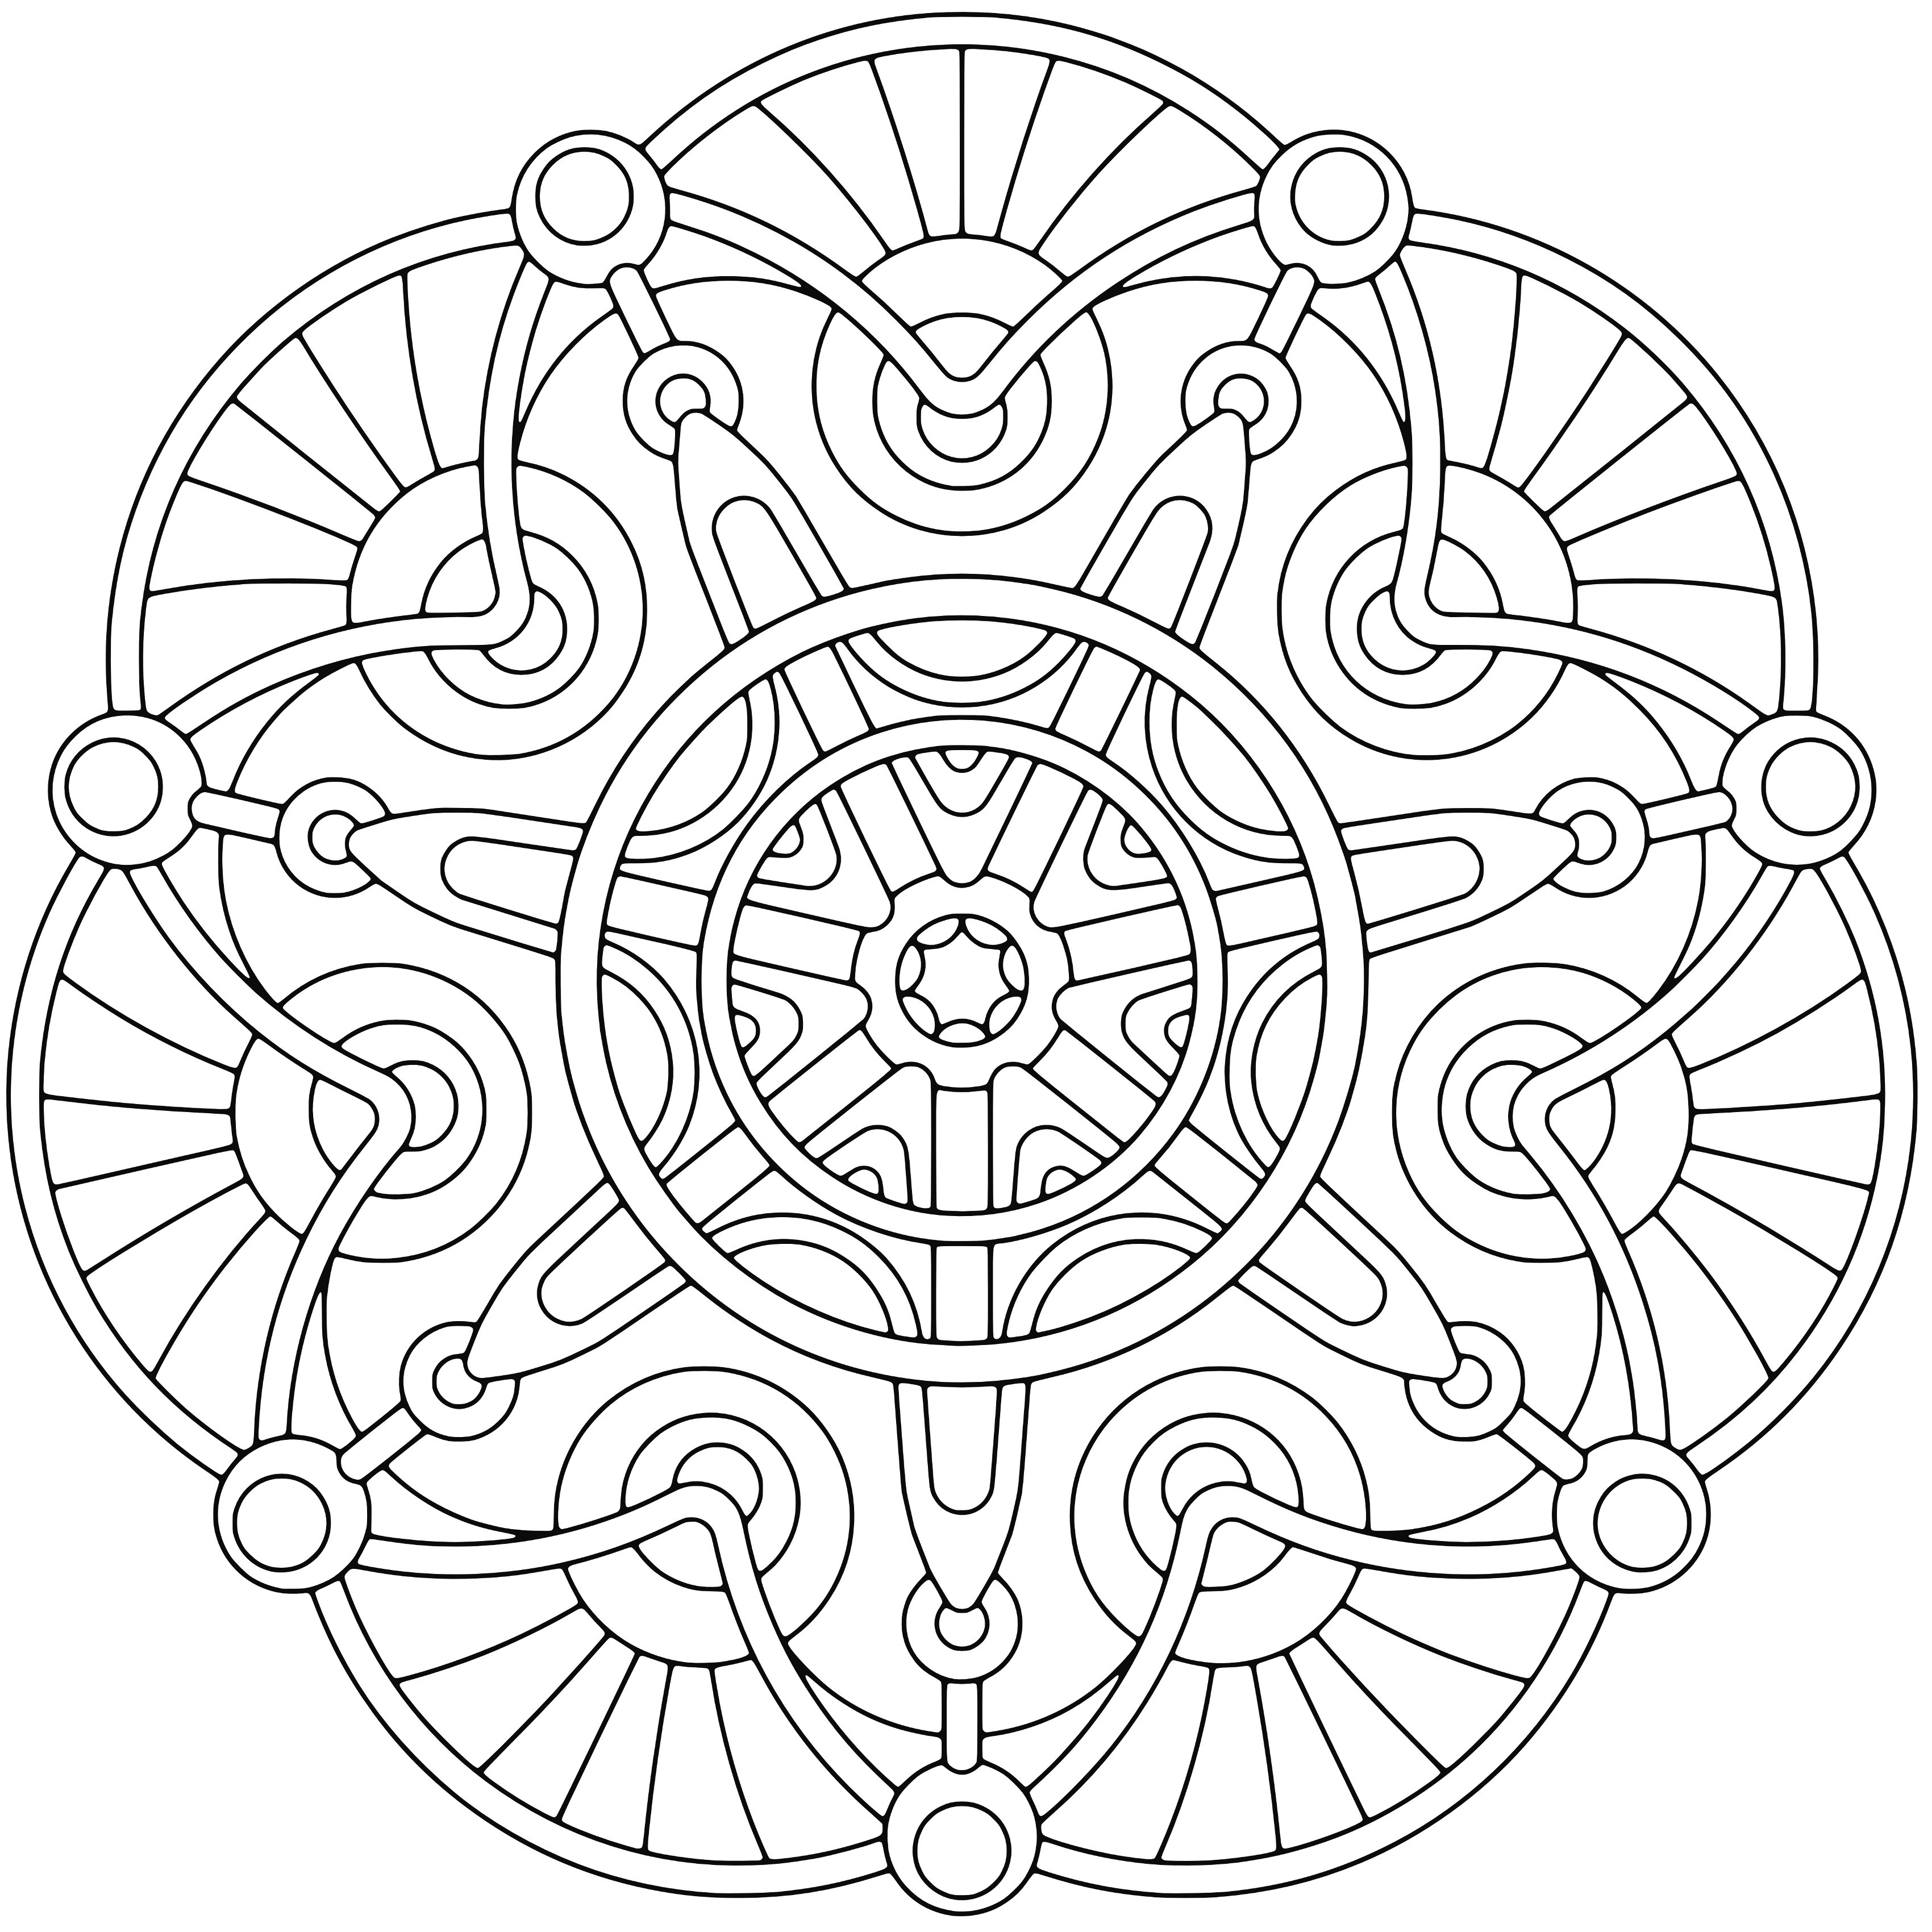 Free Online Coloring Pages  Free Printable Adult Colouring Pages Love Grows